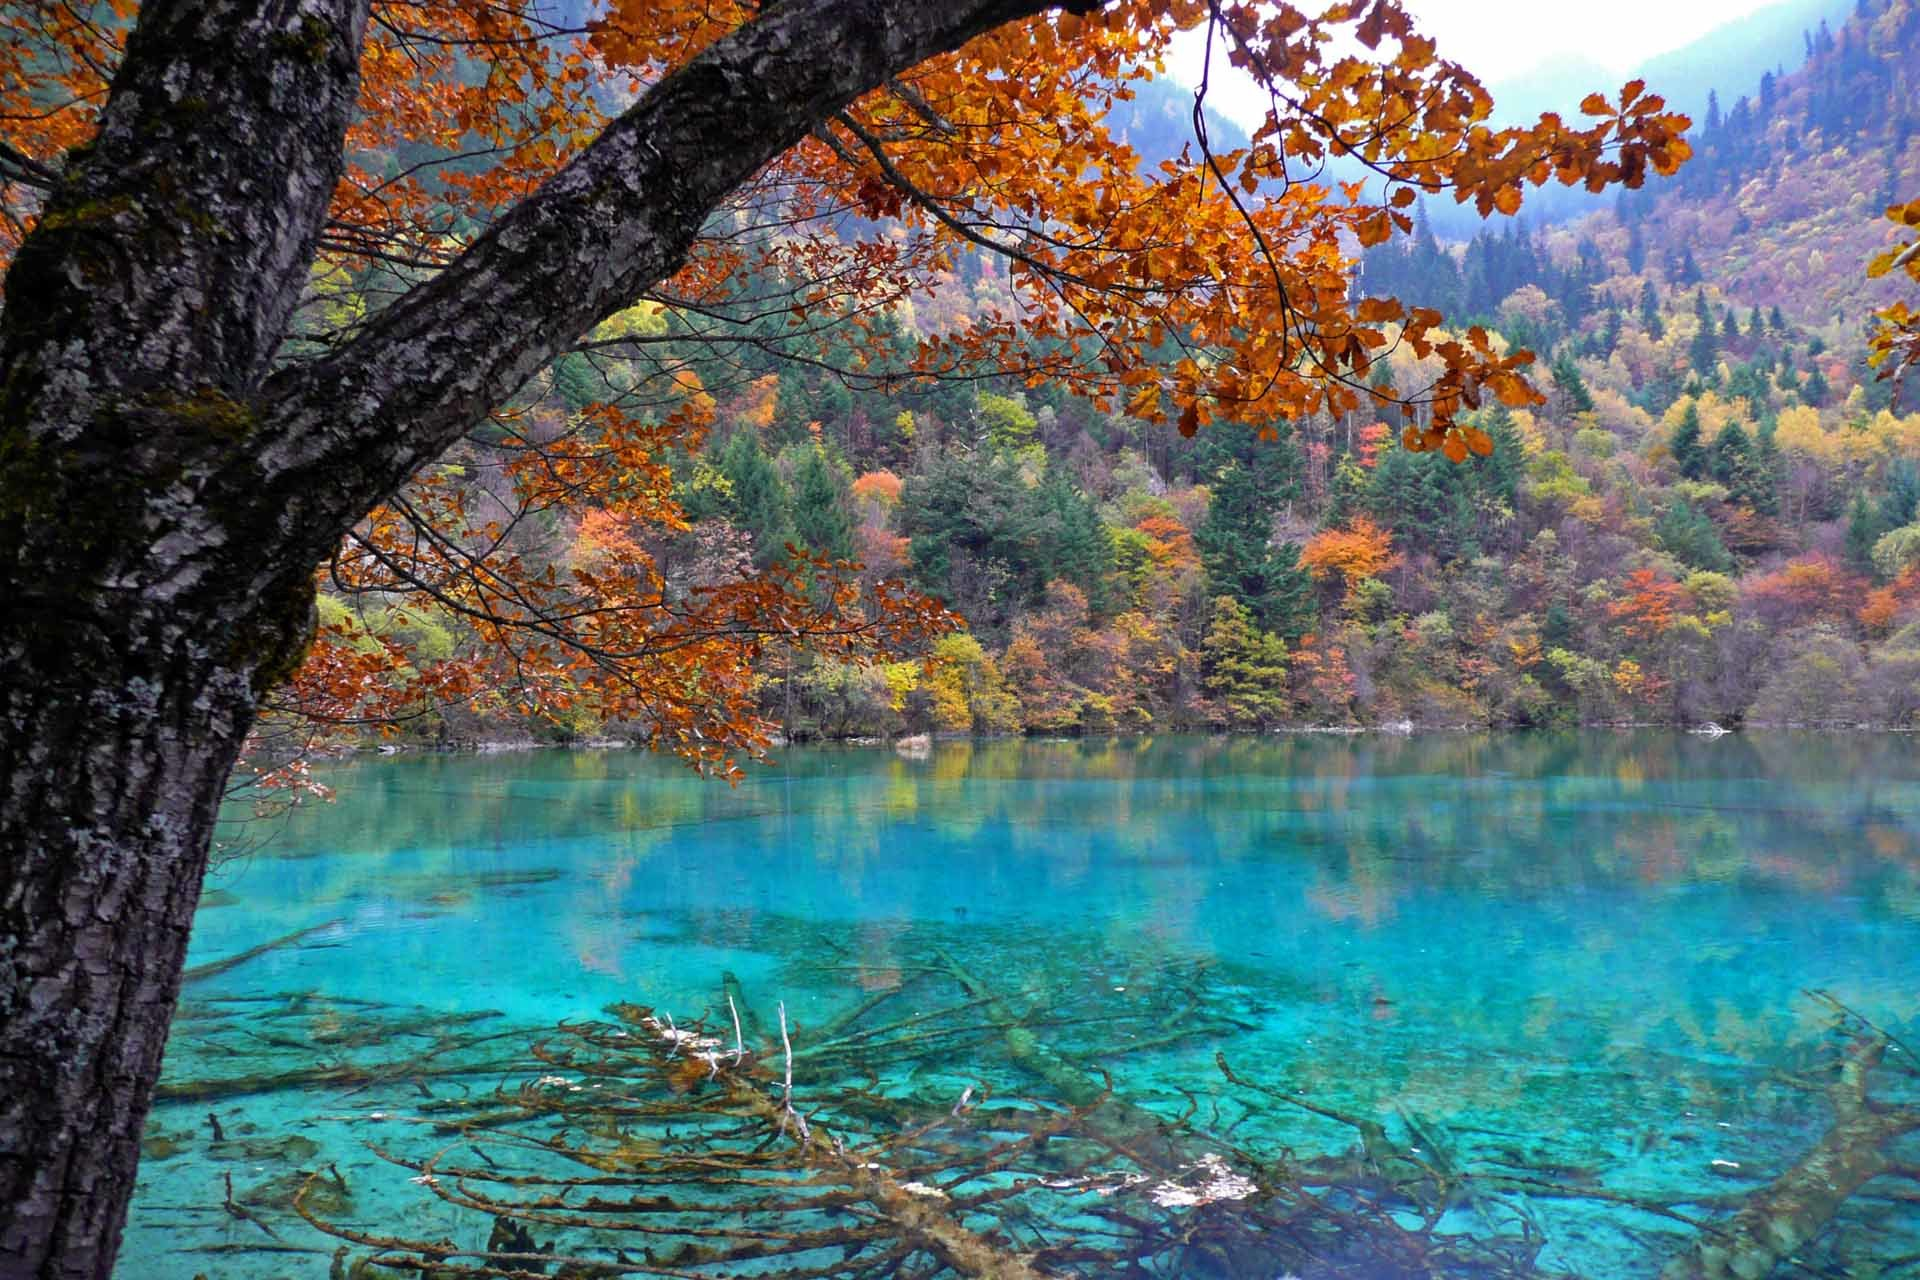 nature China lakes national HD Wallpaper